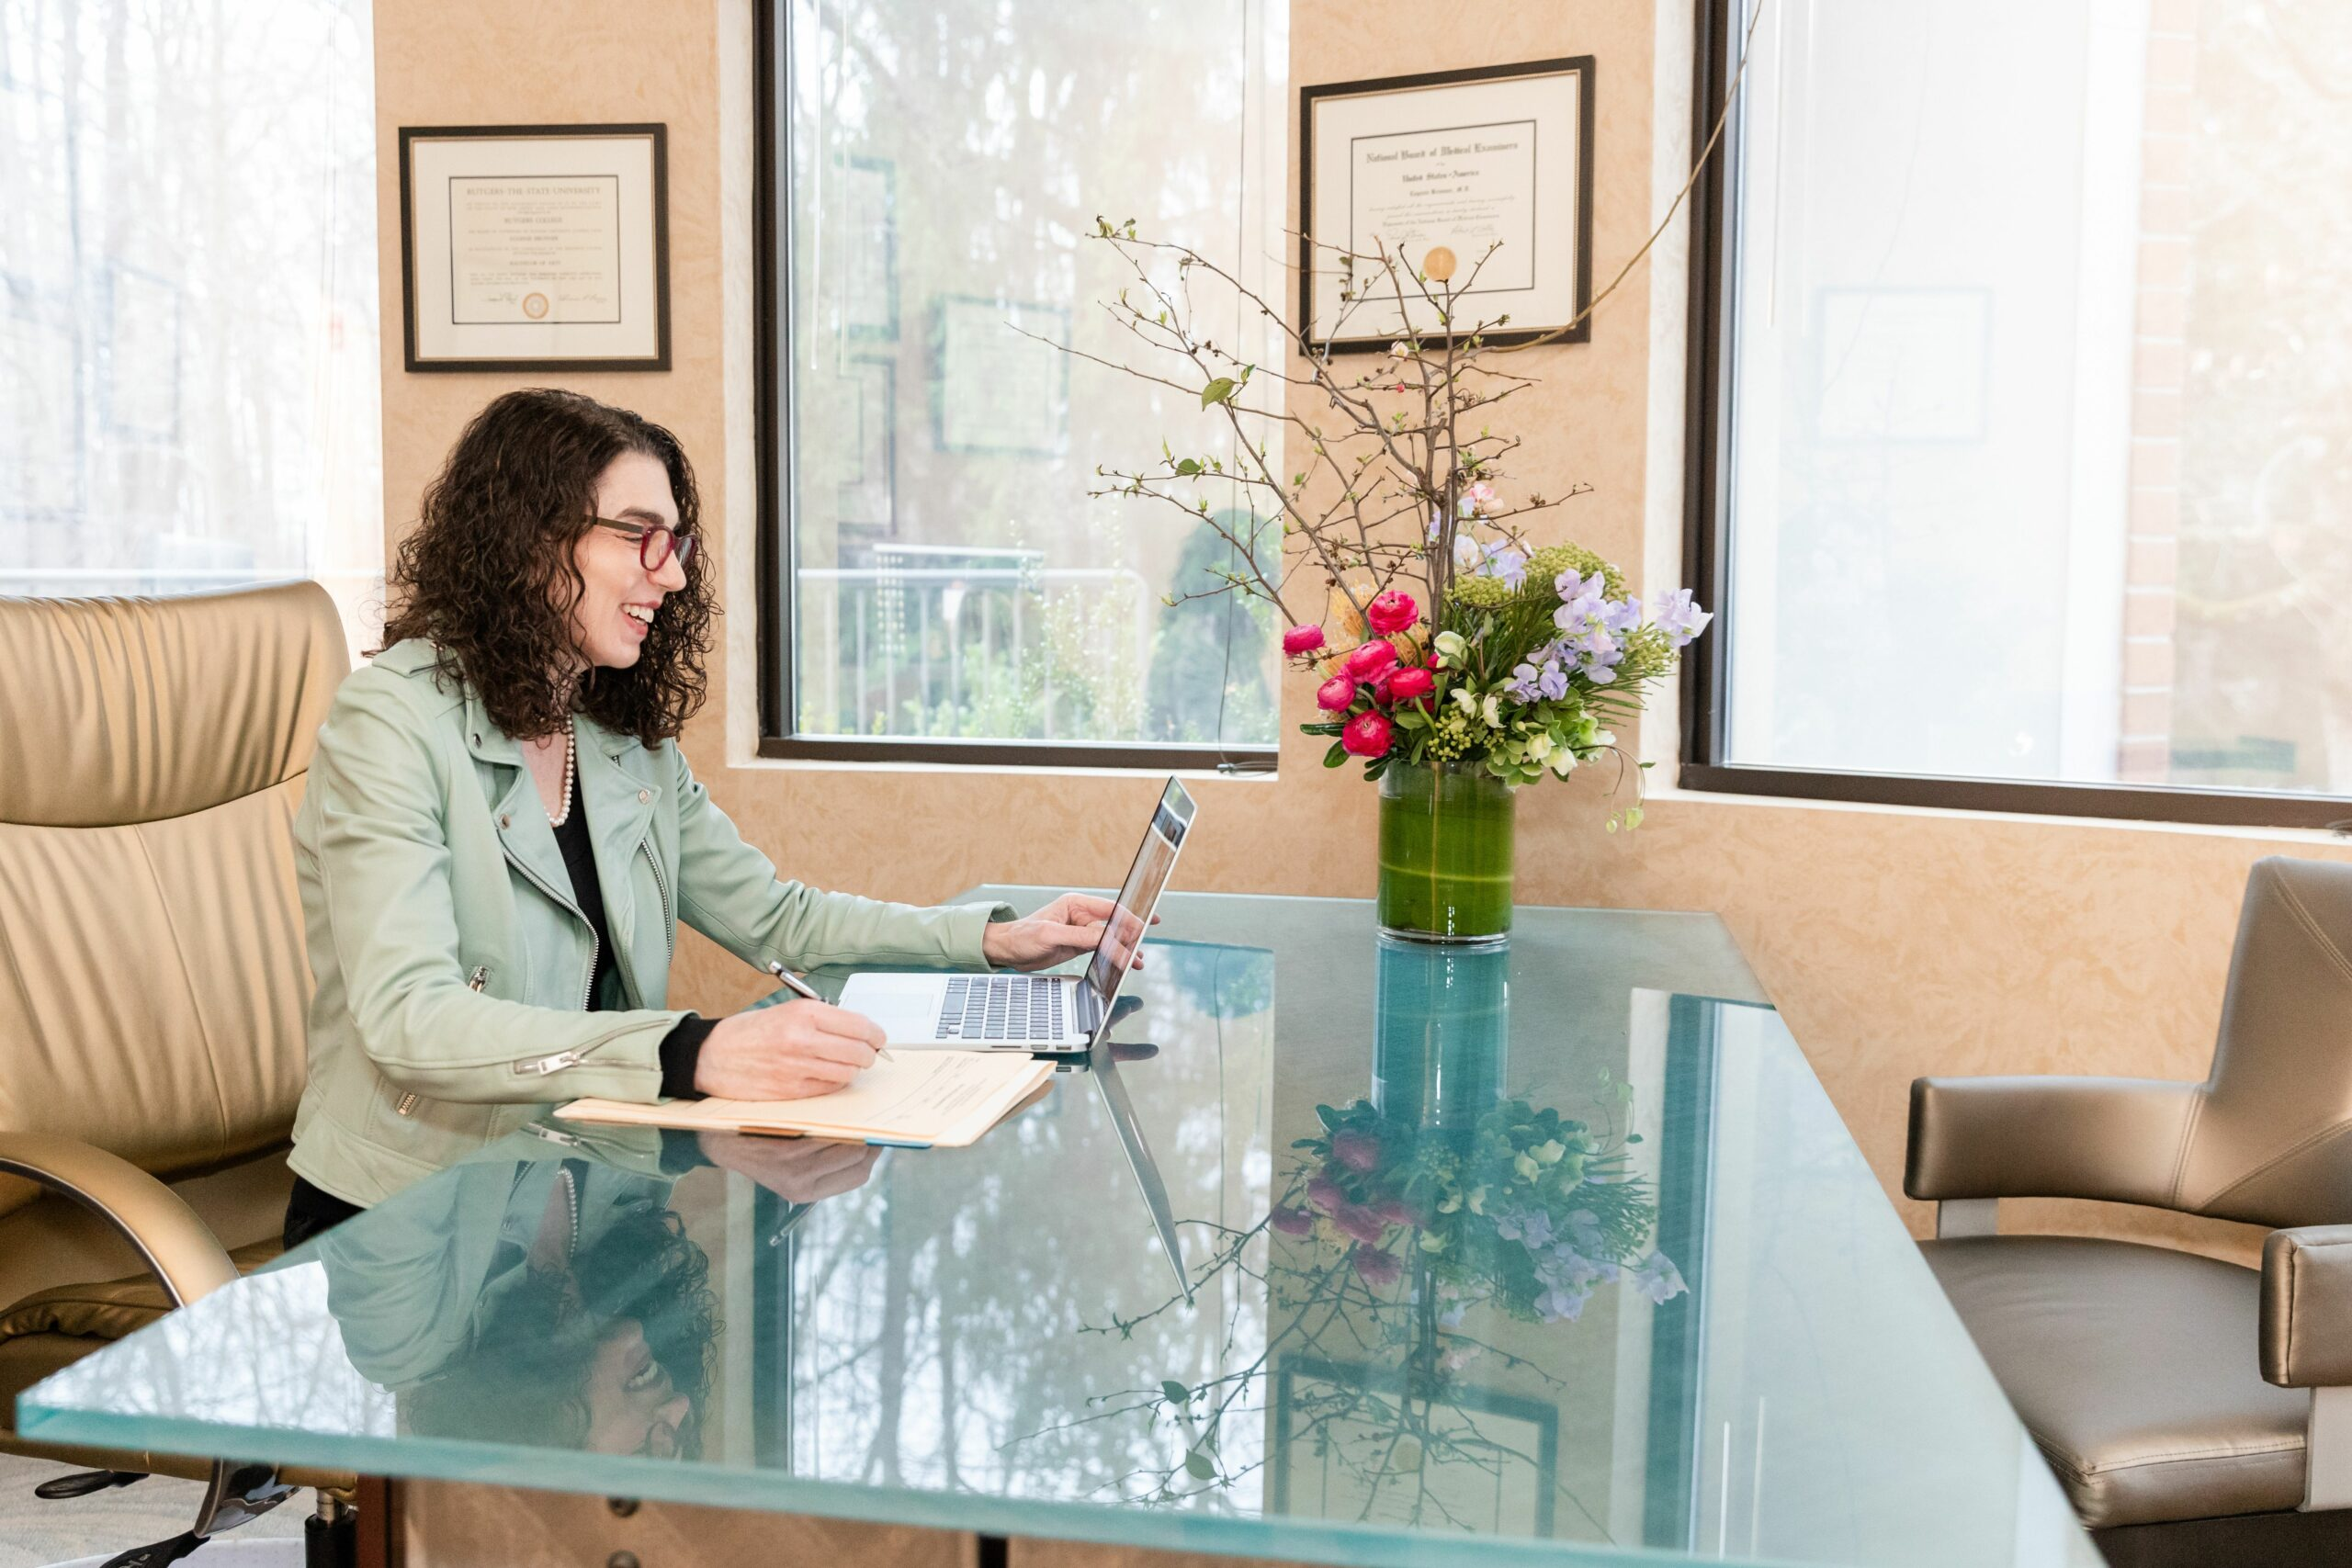 Dr. Eugenie Brunner giving a virtual consultation in her office, NYC